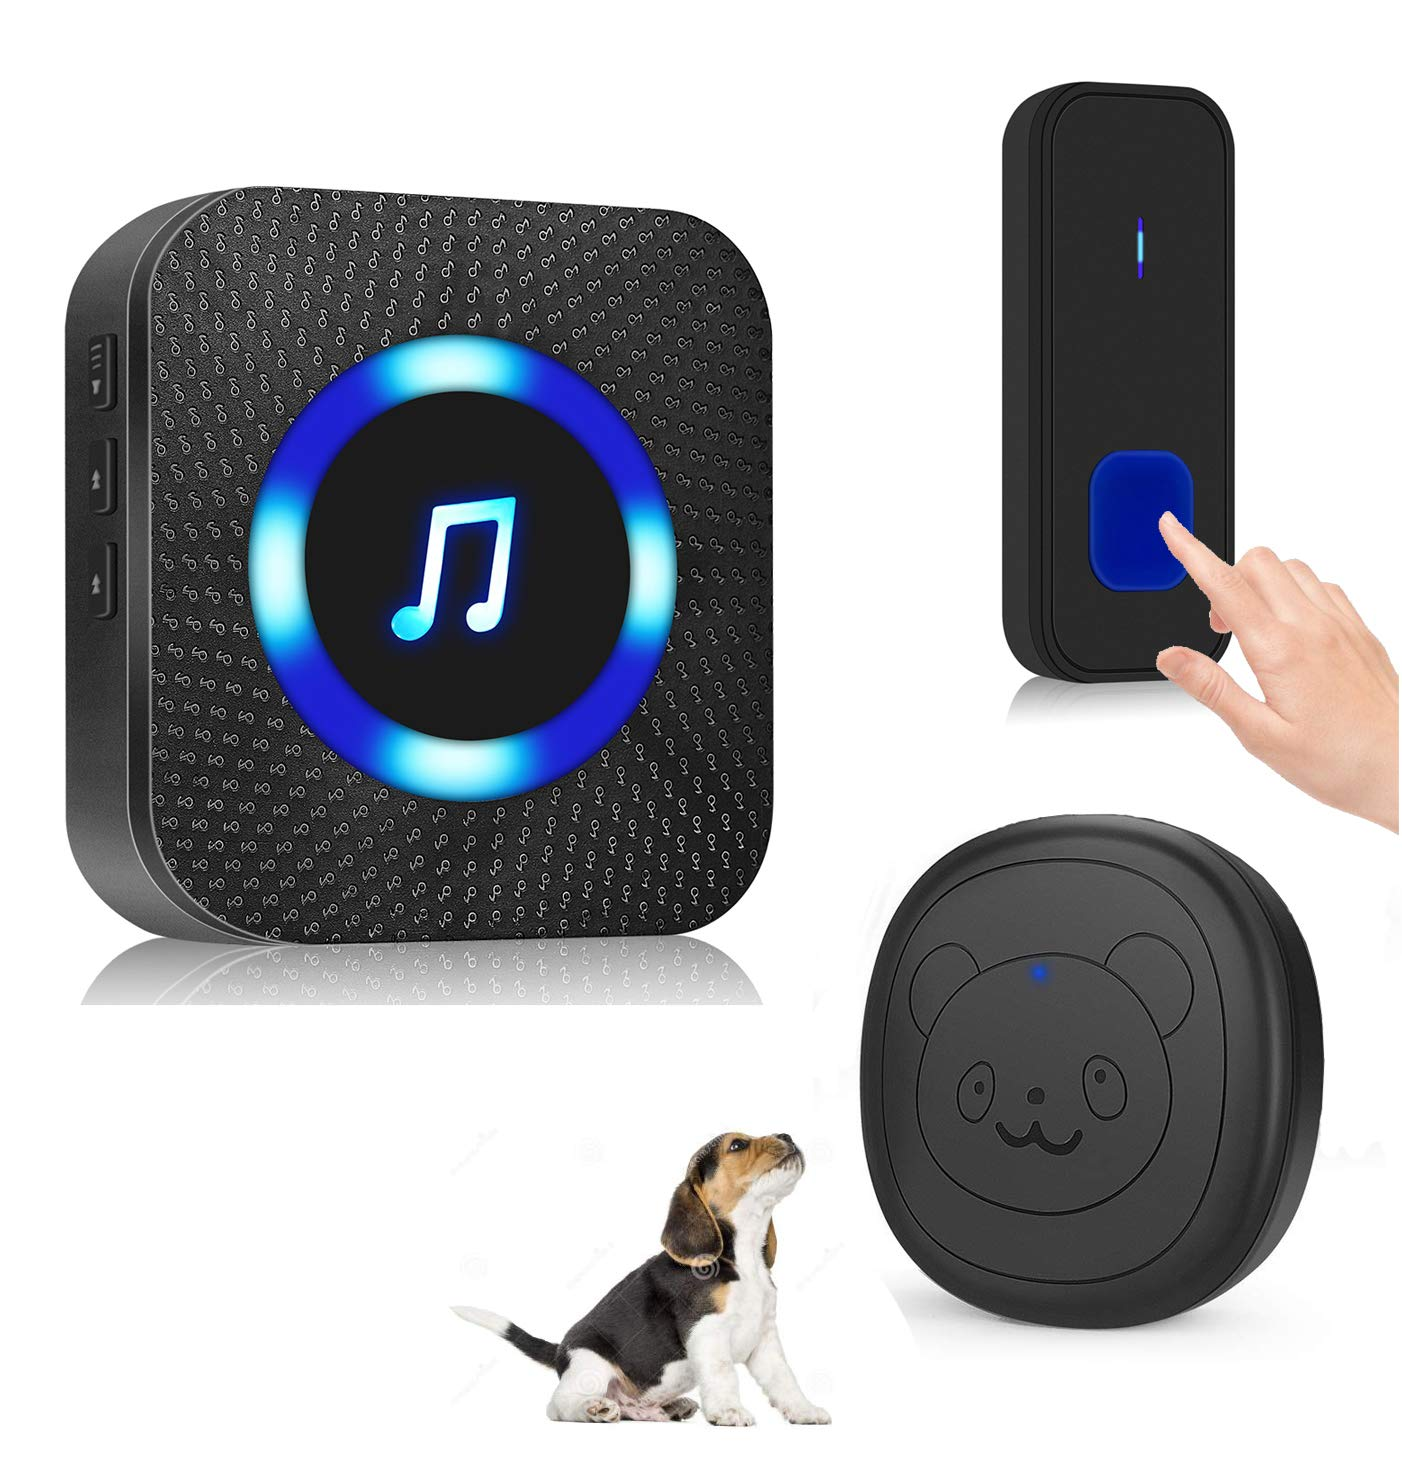 Wireless Caregiver Pager Call Button Smart Personal Alert For Home Patient Nurses Seniors Disabilities 1 Receiver /& 2 Transmitters